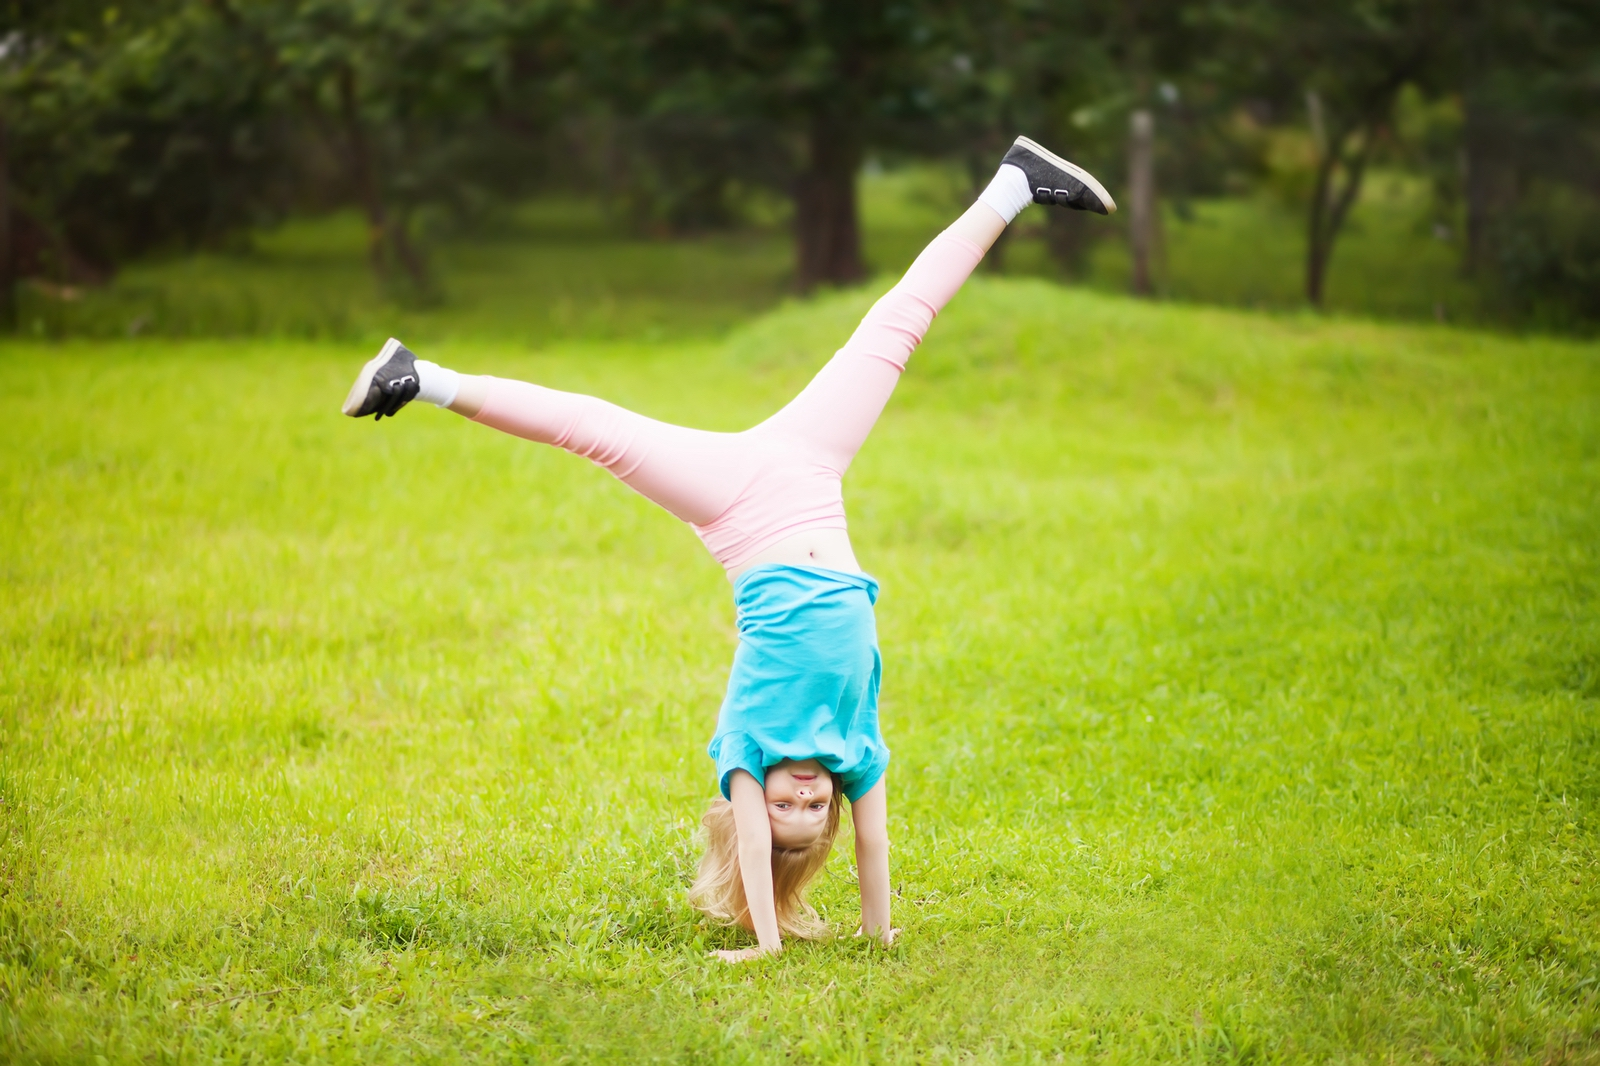 WinterKids Spring Playlist: Music and Movement to Welcome and Appreciate the Season